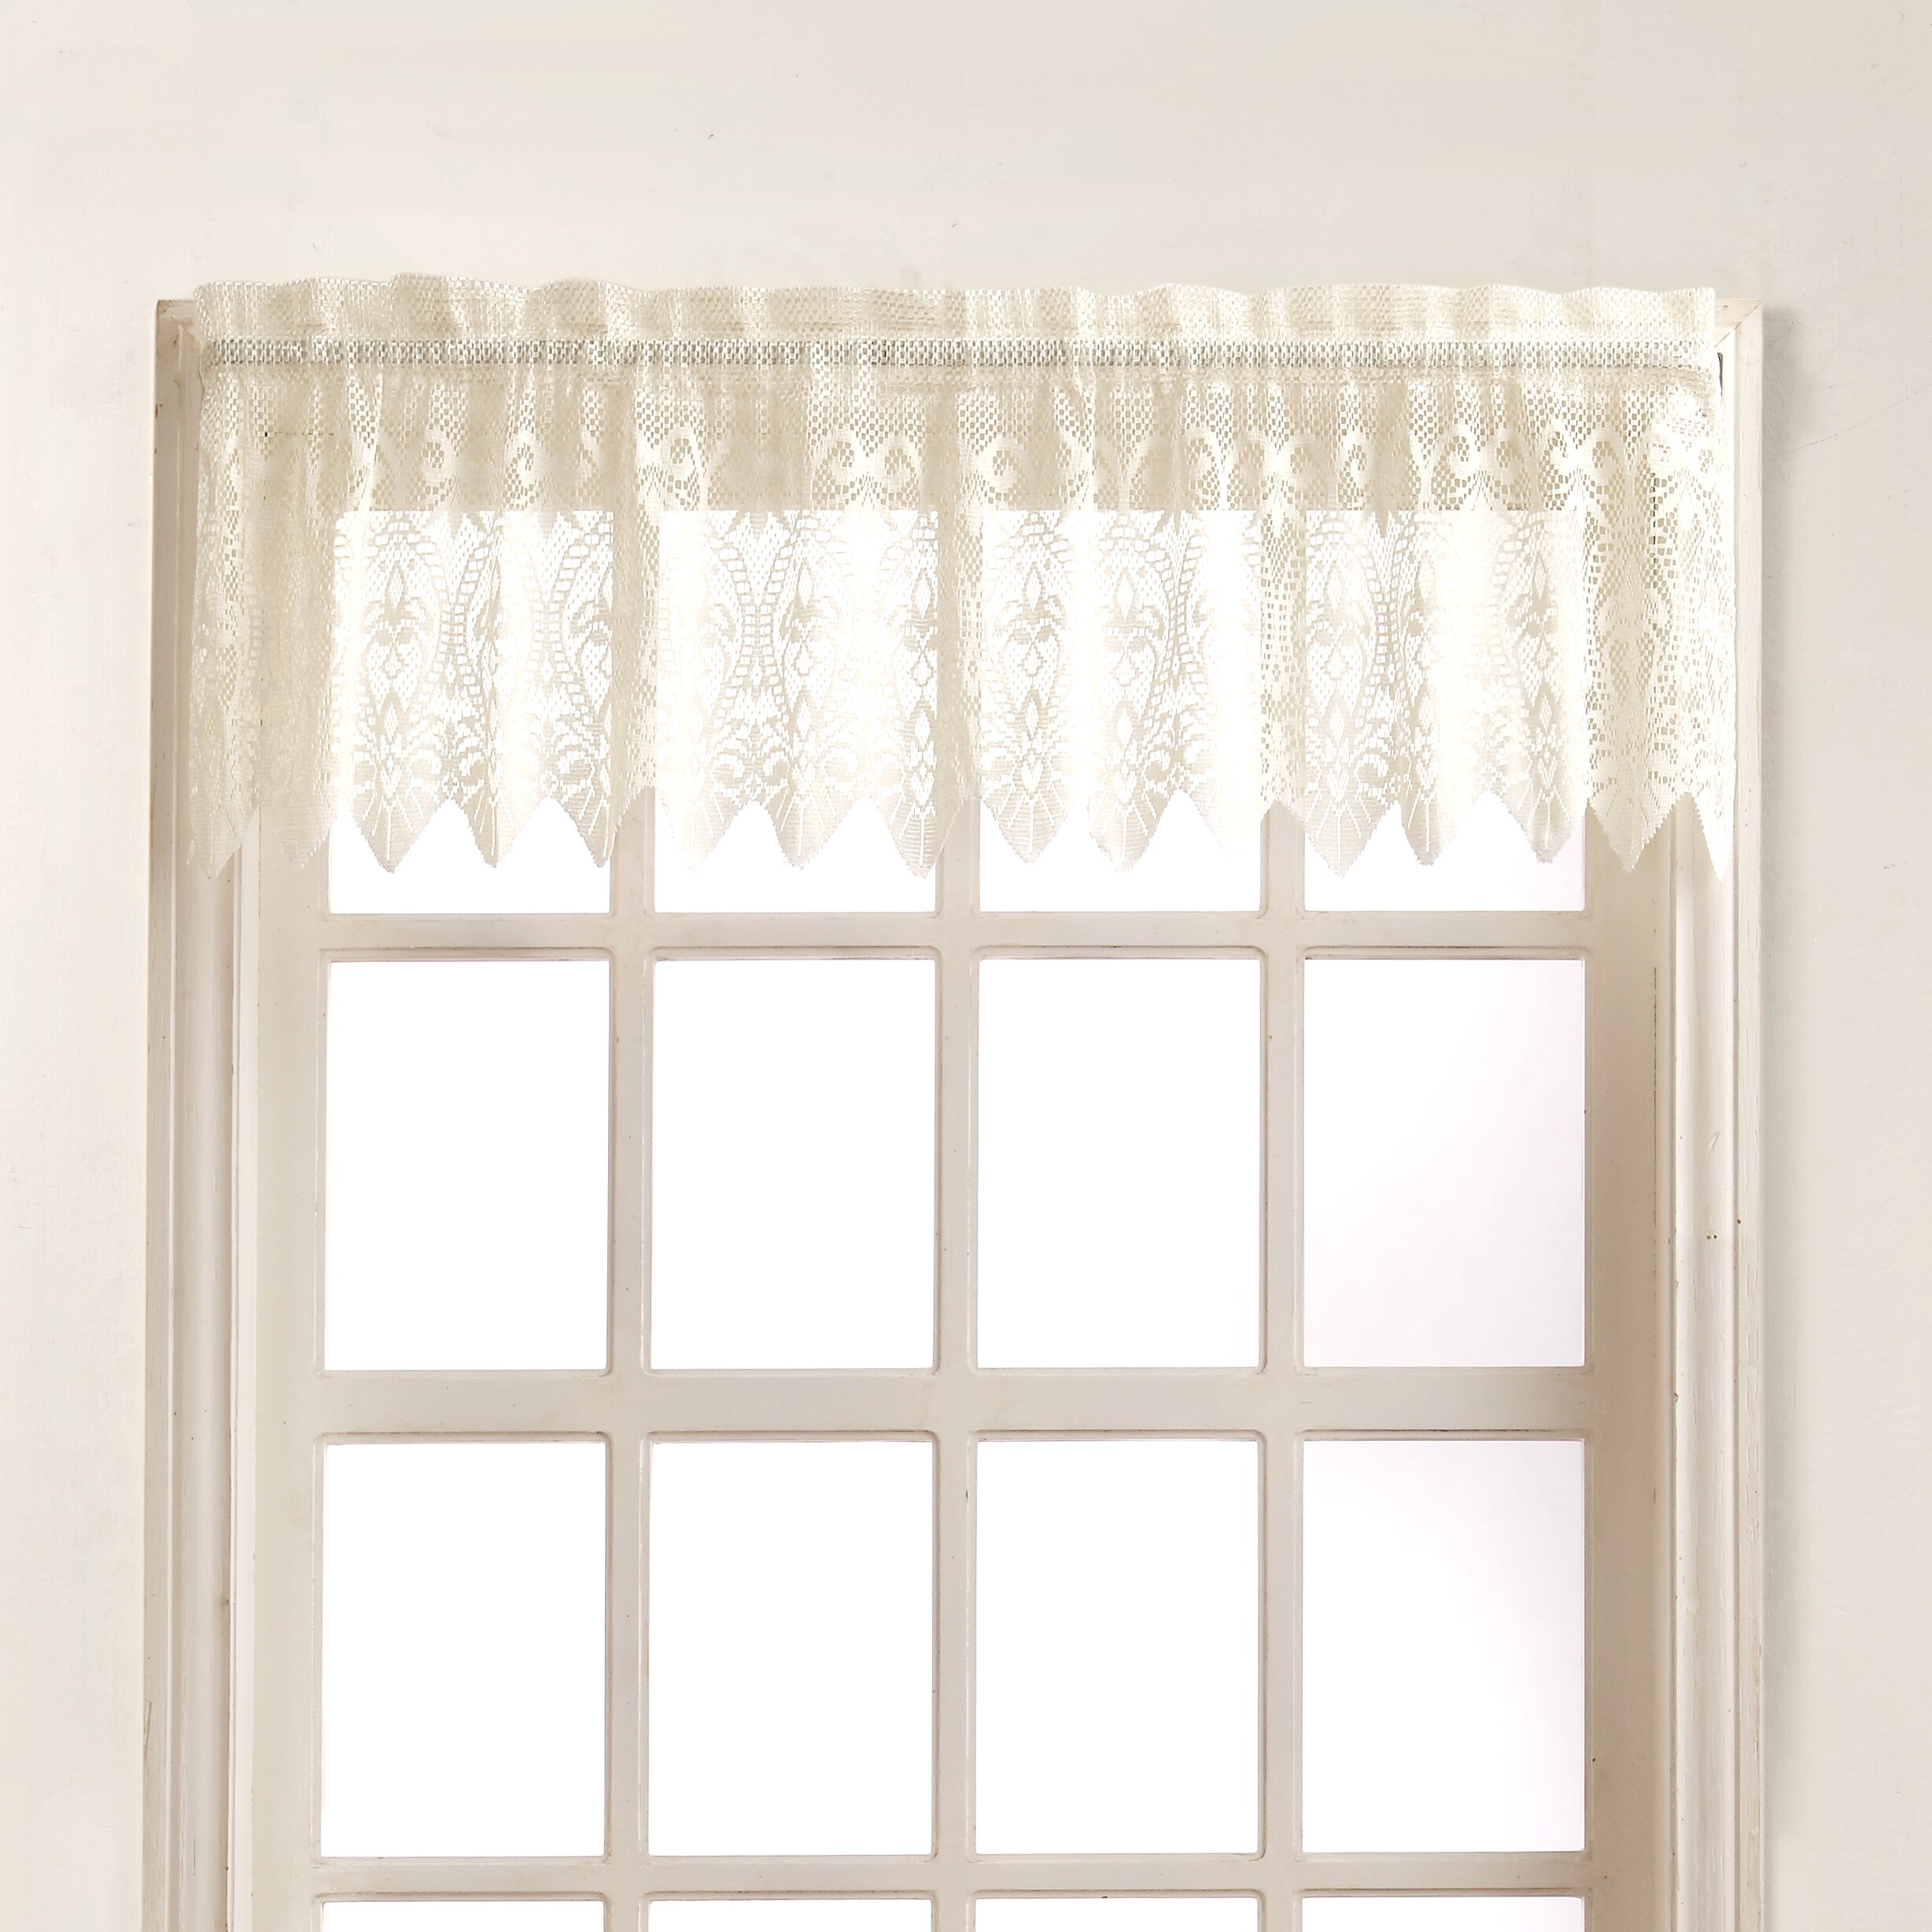 Curtain with valance set Decorate the house with beautiful curtains